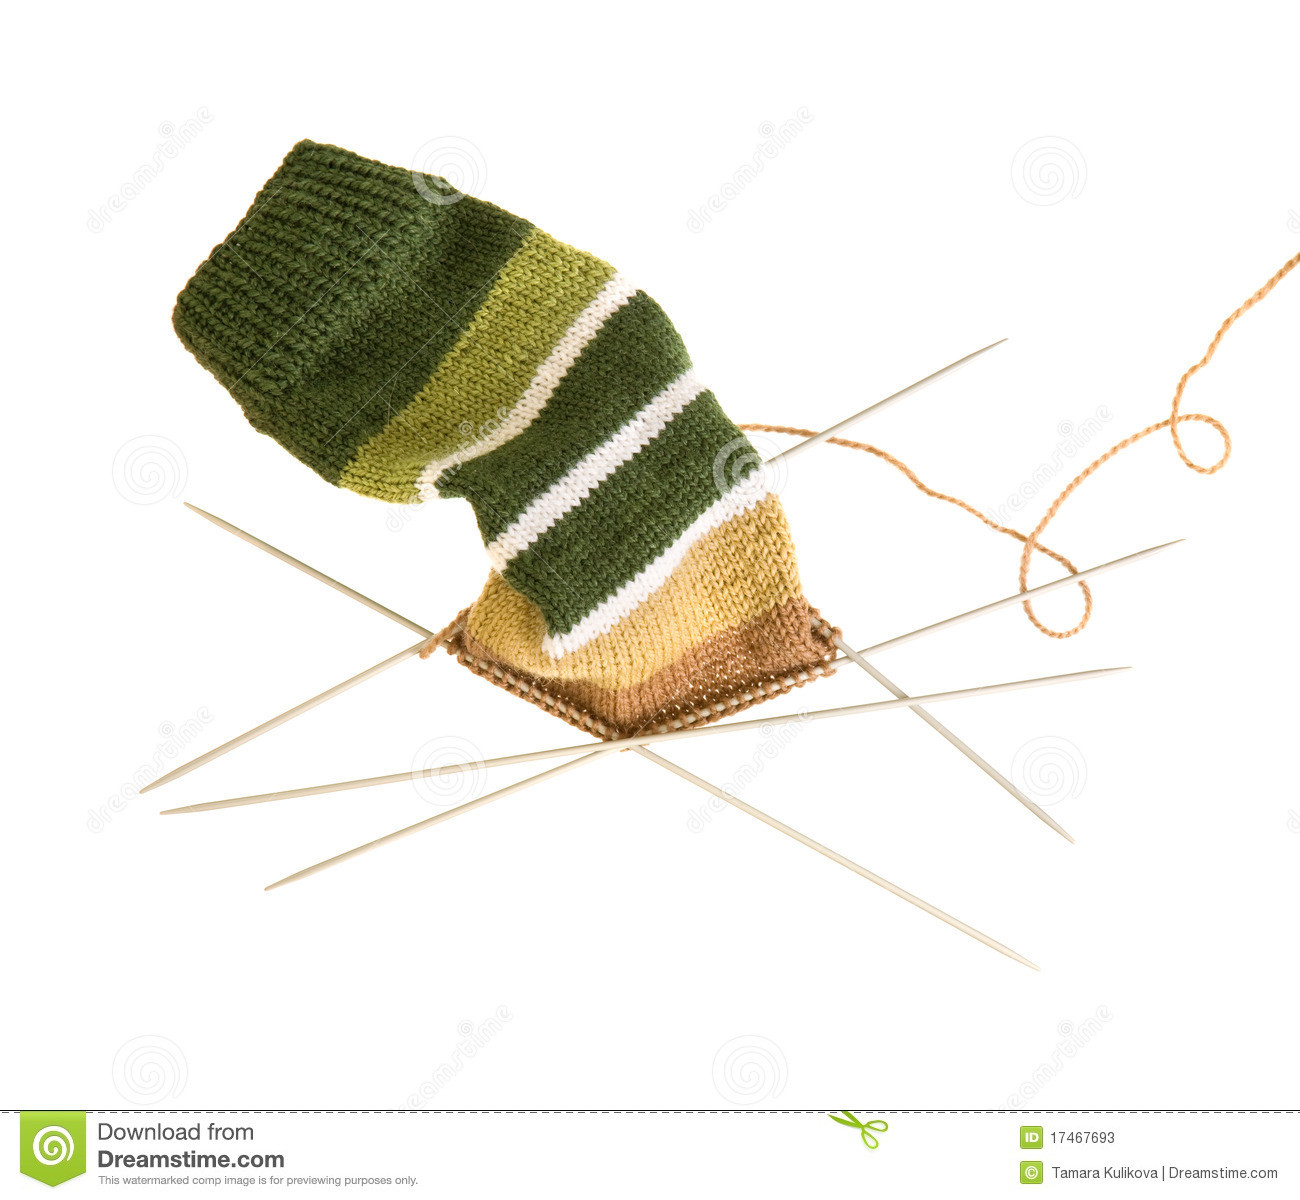 Awesome Knitting A Striped sock Five Needles Stock S sock Knitting Needles Of Wonderful 44 Photos sock Knitting Needles